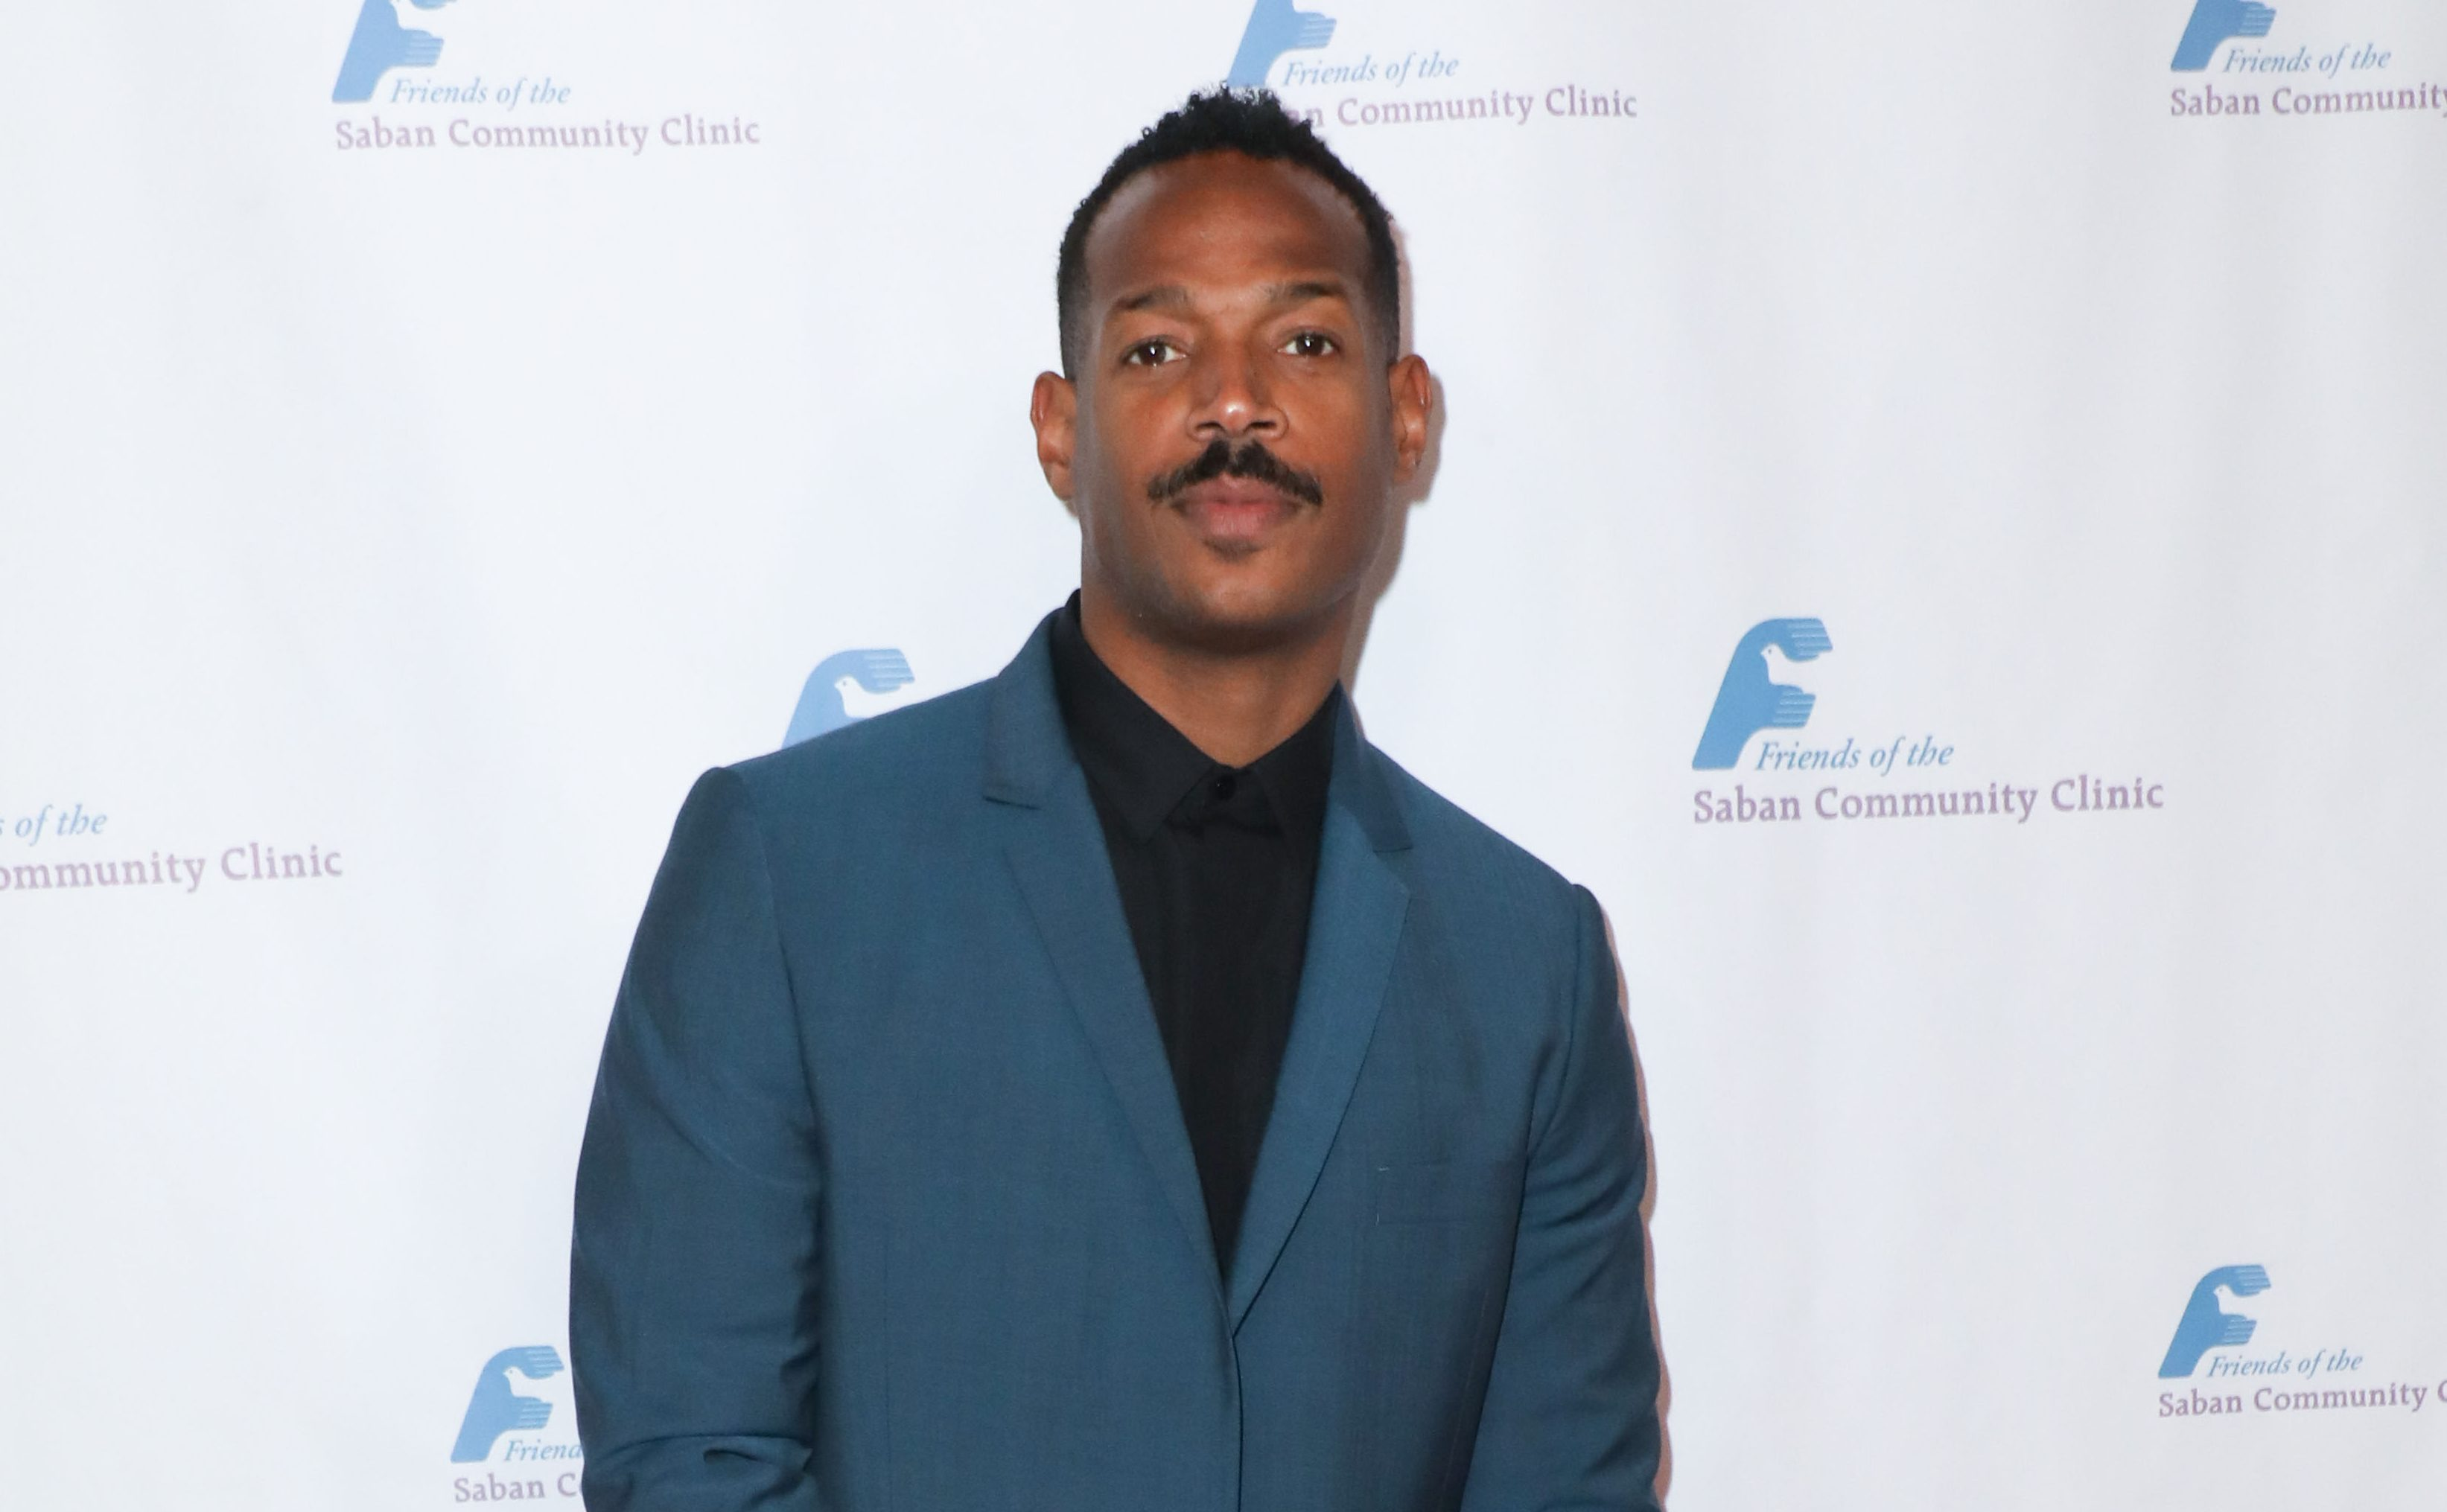 Marlon Wayans arrives at the Saban Community Clinic's 43rd Annual Dinner Gala held at The Beverly Hilton Hotel on November 18, 2019 in Beverly Hills, Los Angeles, California, United States. (Photo by Image Press Agency)